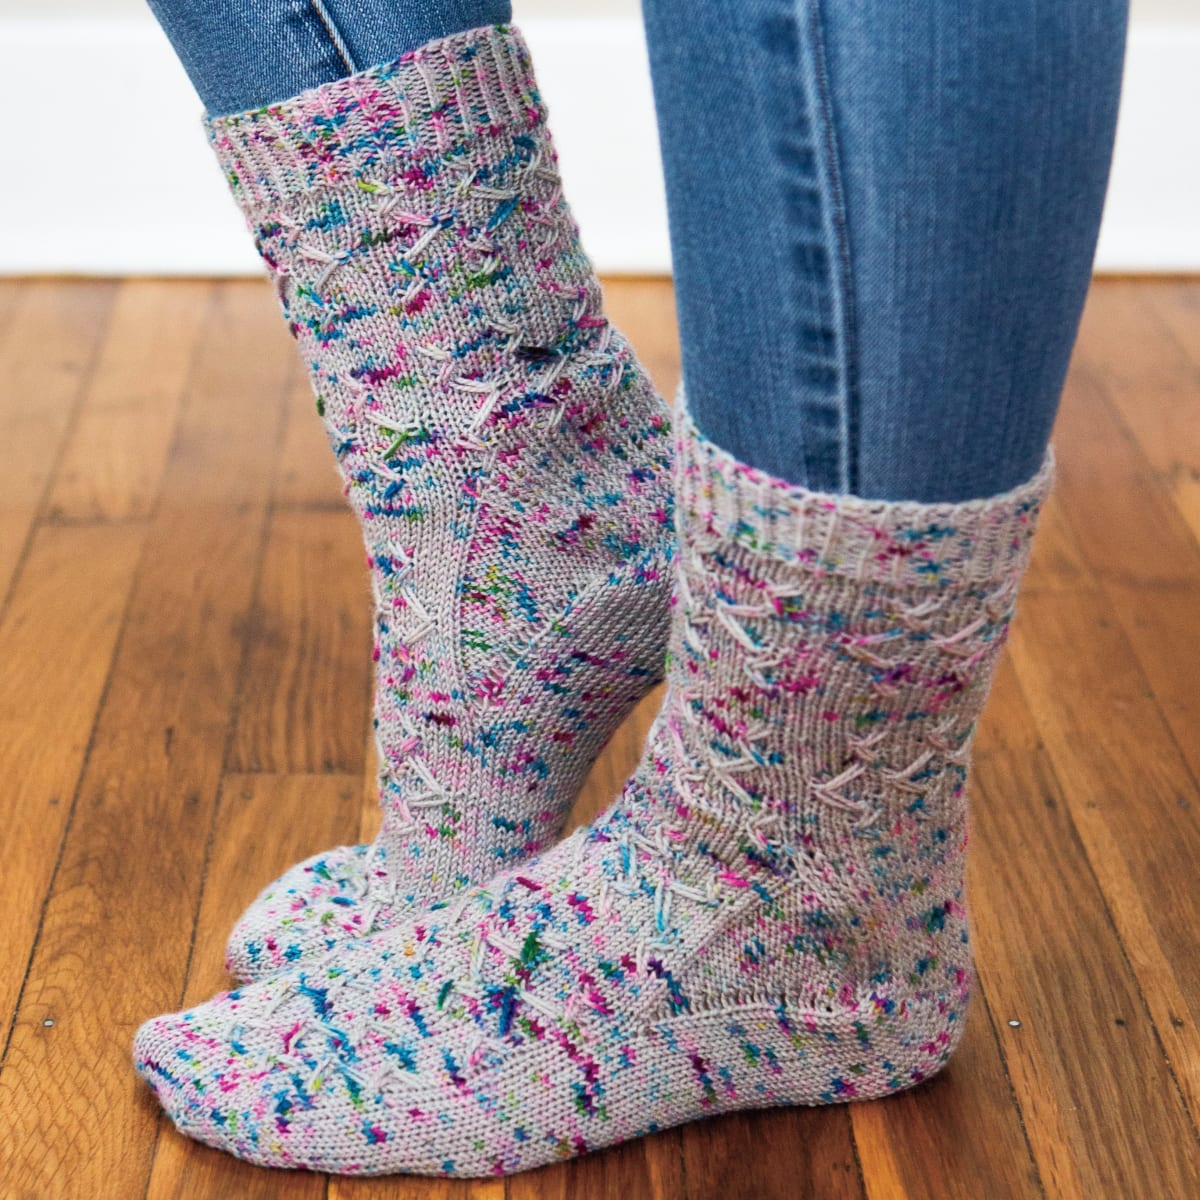 One foot flat and one on tiptoe wearing grey knitted socks with blue and purple speckles and an angular slipped-stitch surface texture.